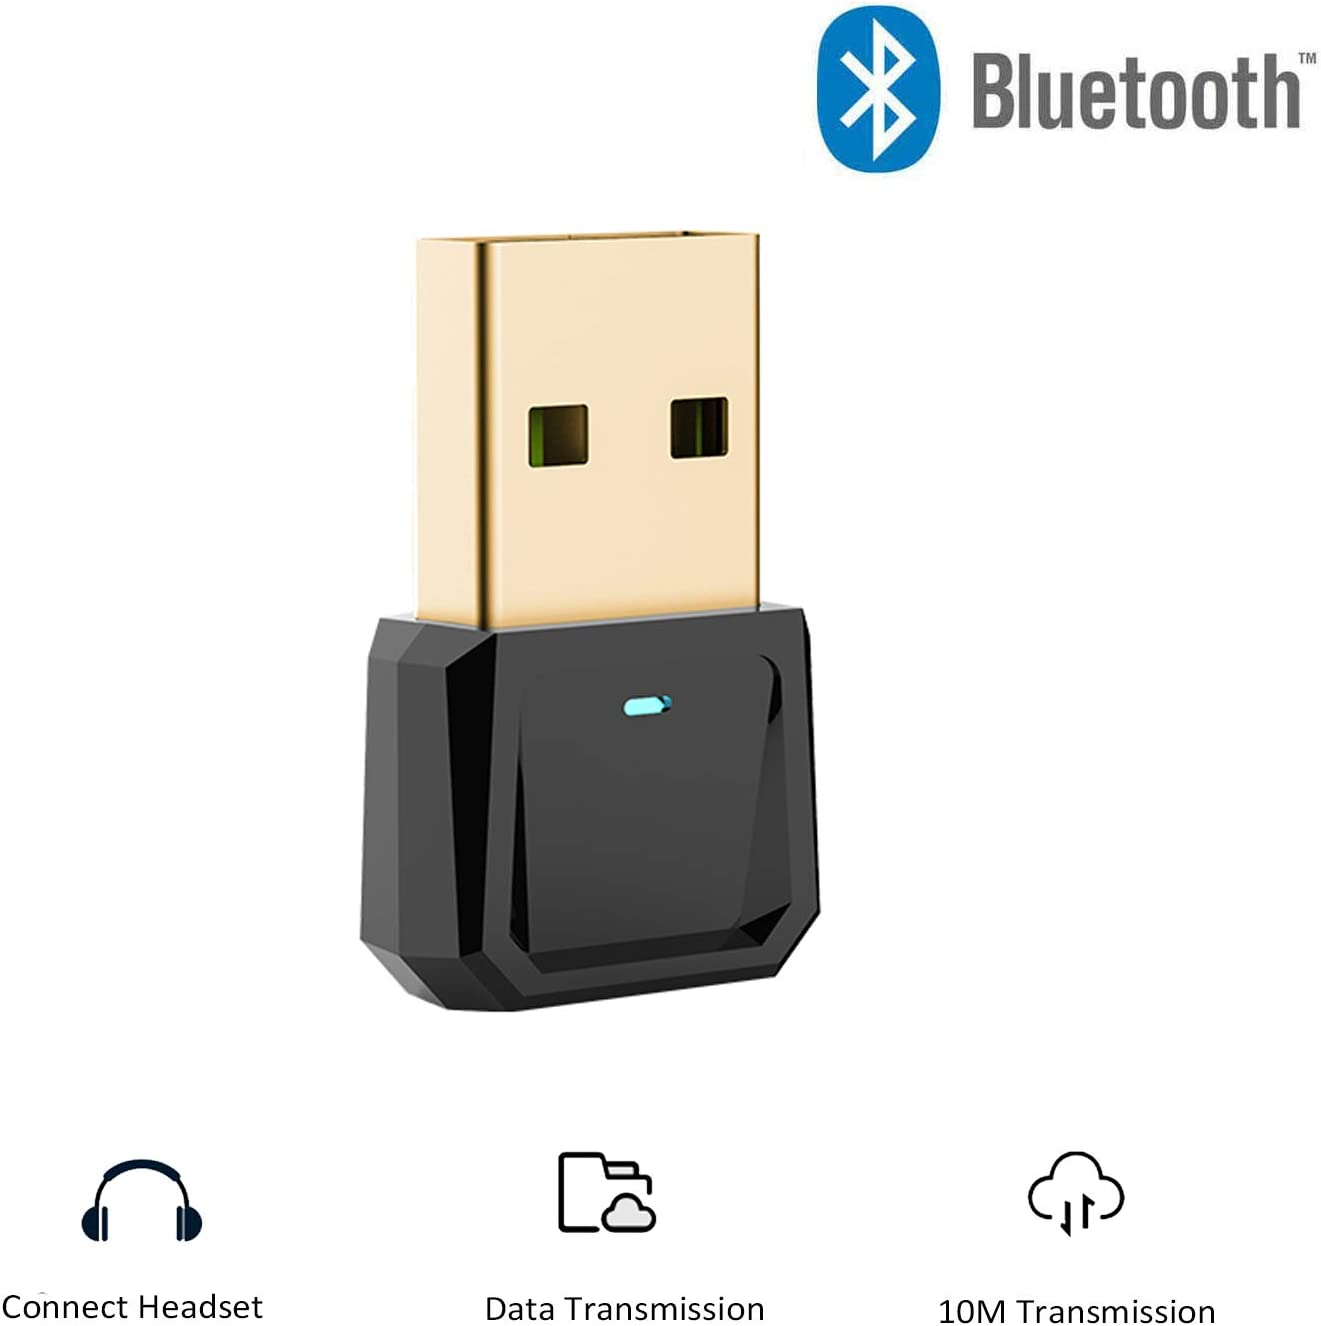 USB Bluetooth Adapter, Wireless Bluetooth Dongle for PC Desktop Laptop Tablet, Works with Windows 10/8.1/8/7/Vista/XP, Compatible with Bluetooth Mouse/Keyboard/Speakers/Headset